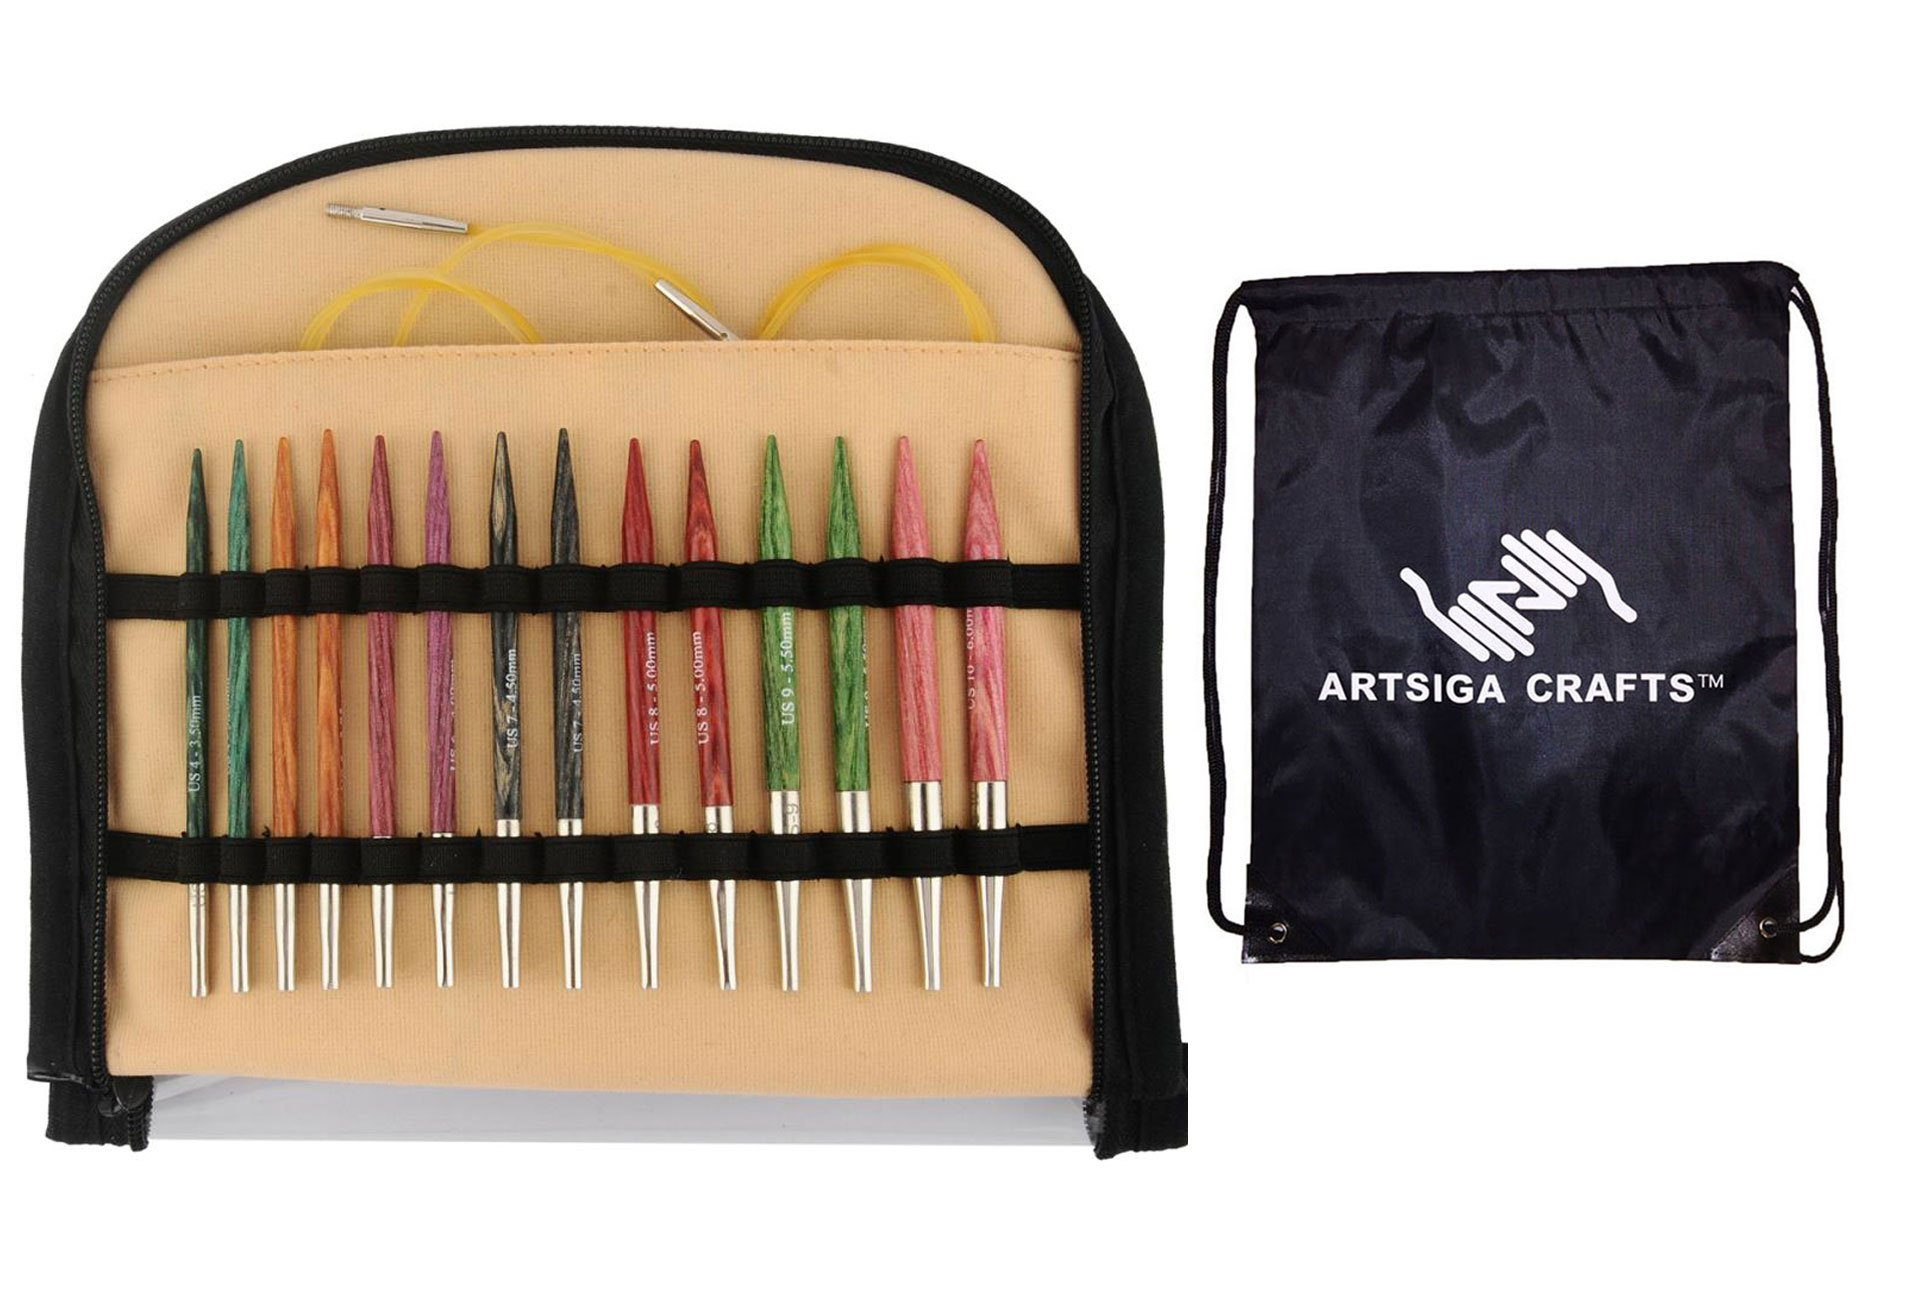 Knitter's Pride Knitting Needles Dreamz Special 16 inch Interchangeable Short Tip Set Bundle with 1 Artsiga Crafts Project Bag 200608